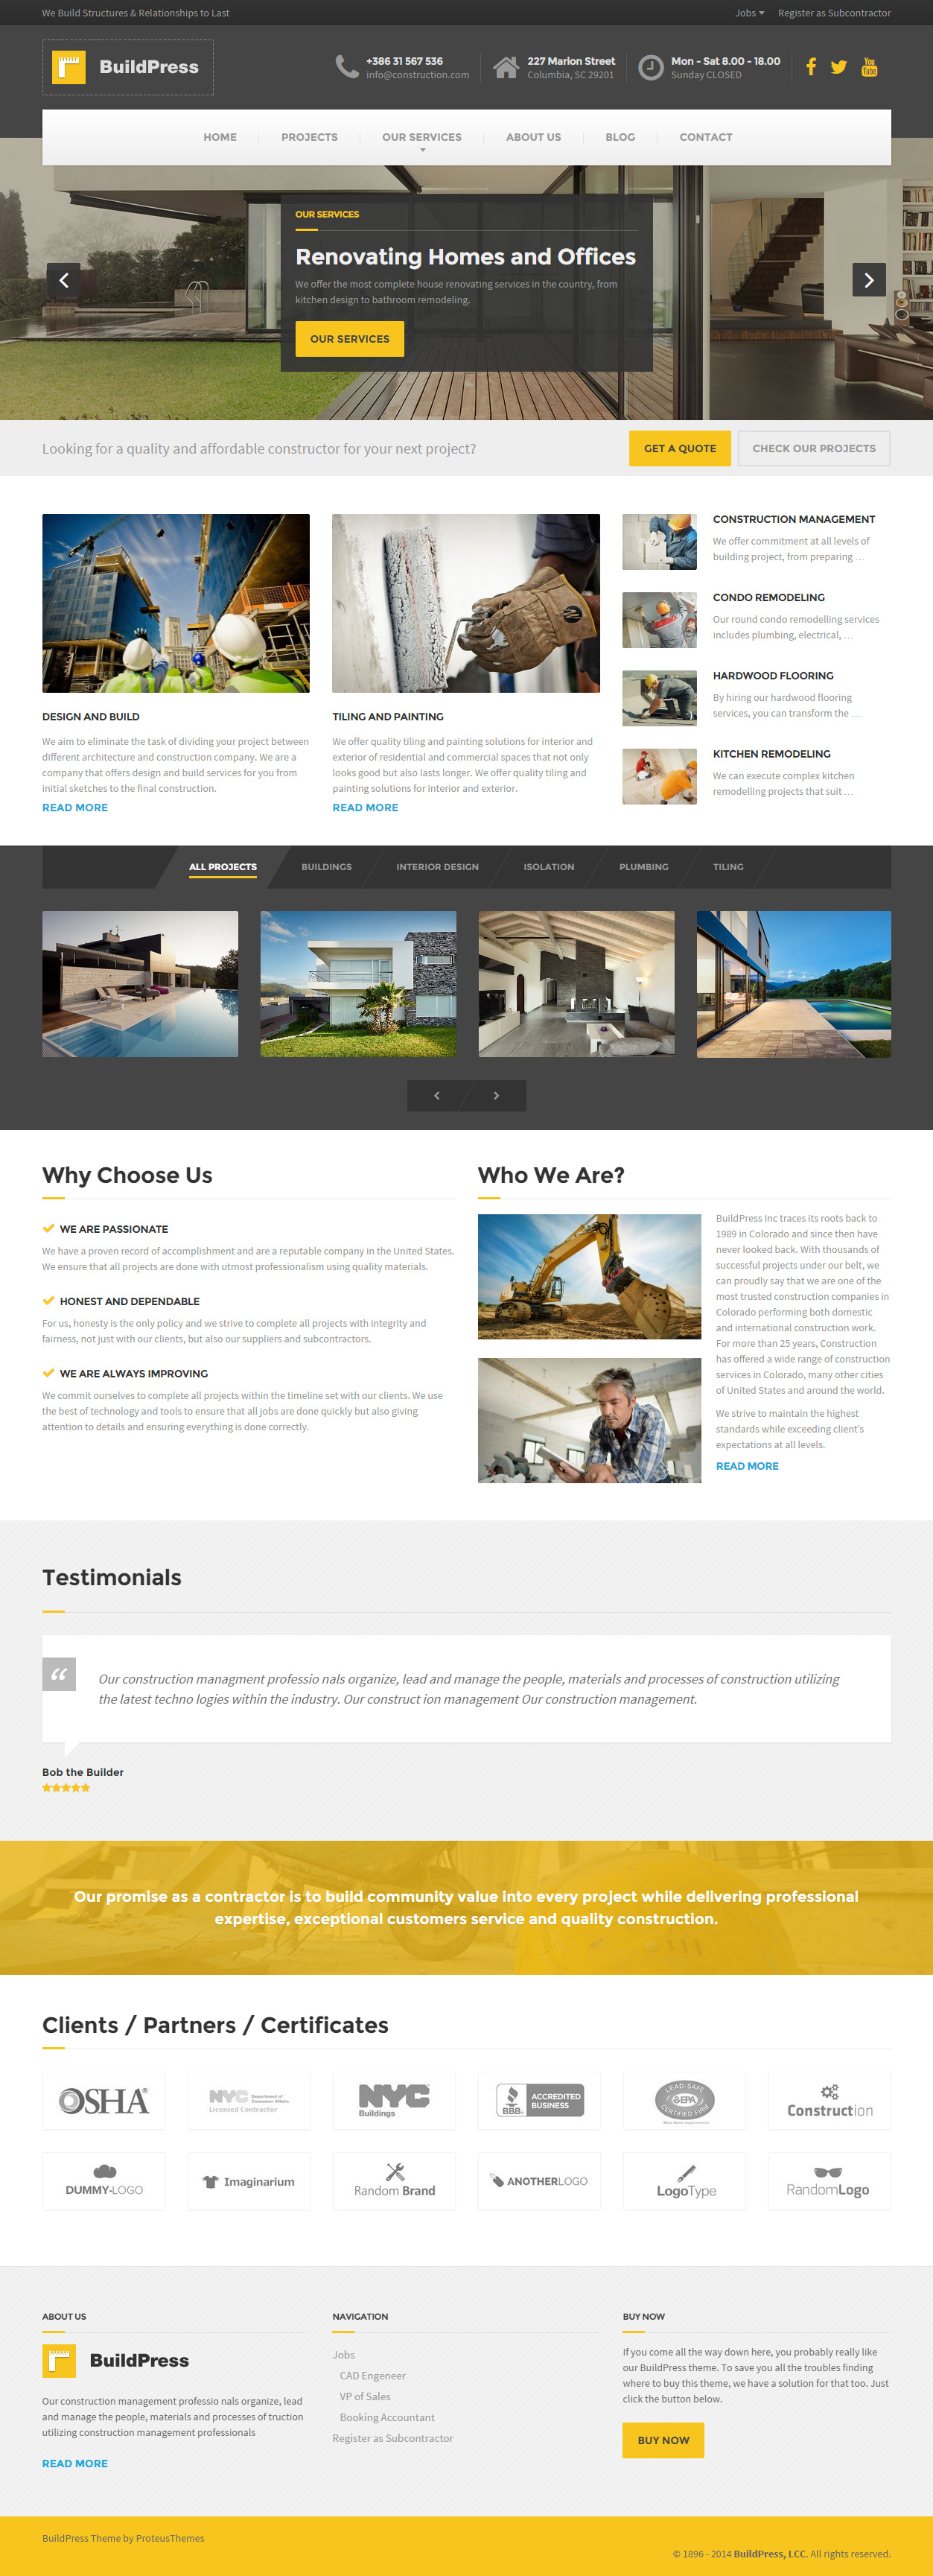 buildpress-wordpress-responsive-theme-desktop-full